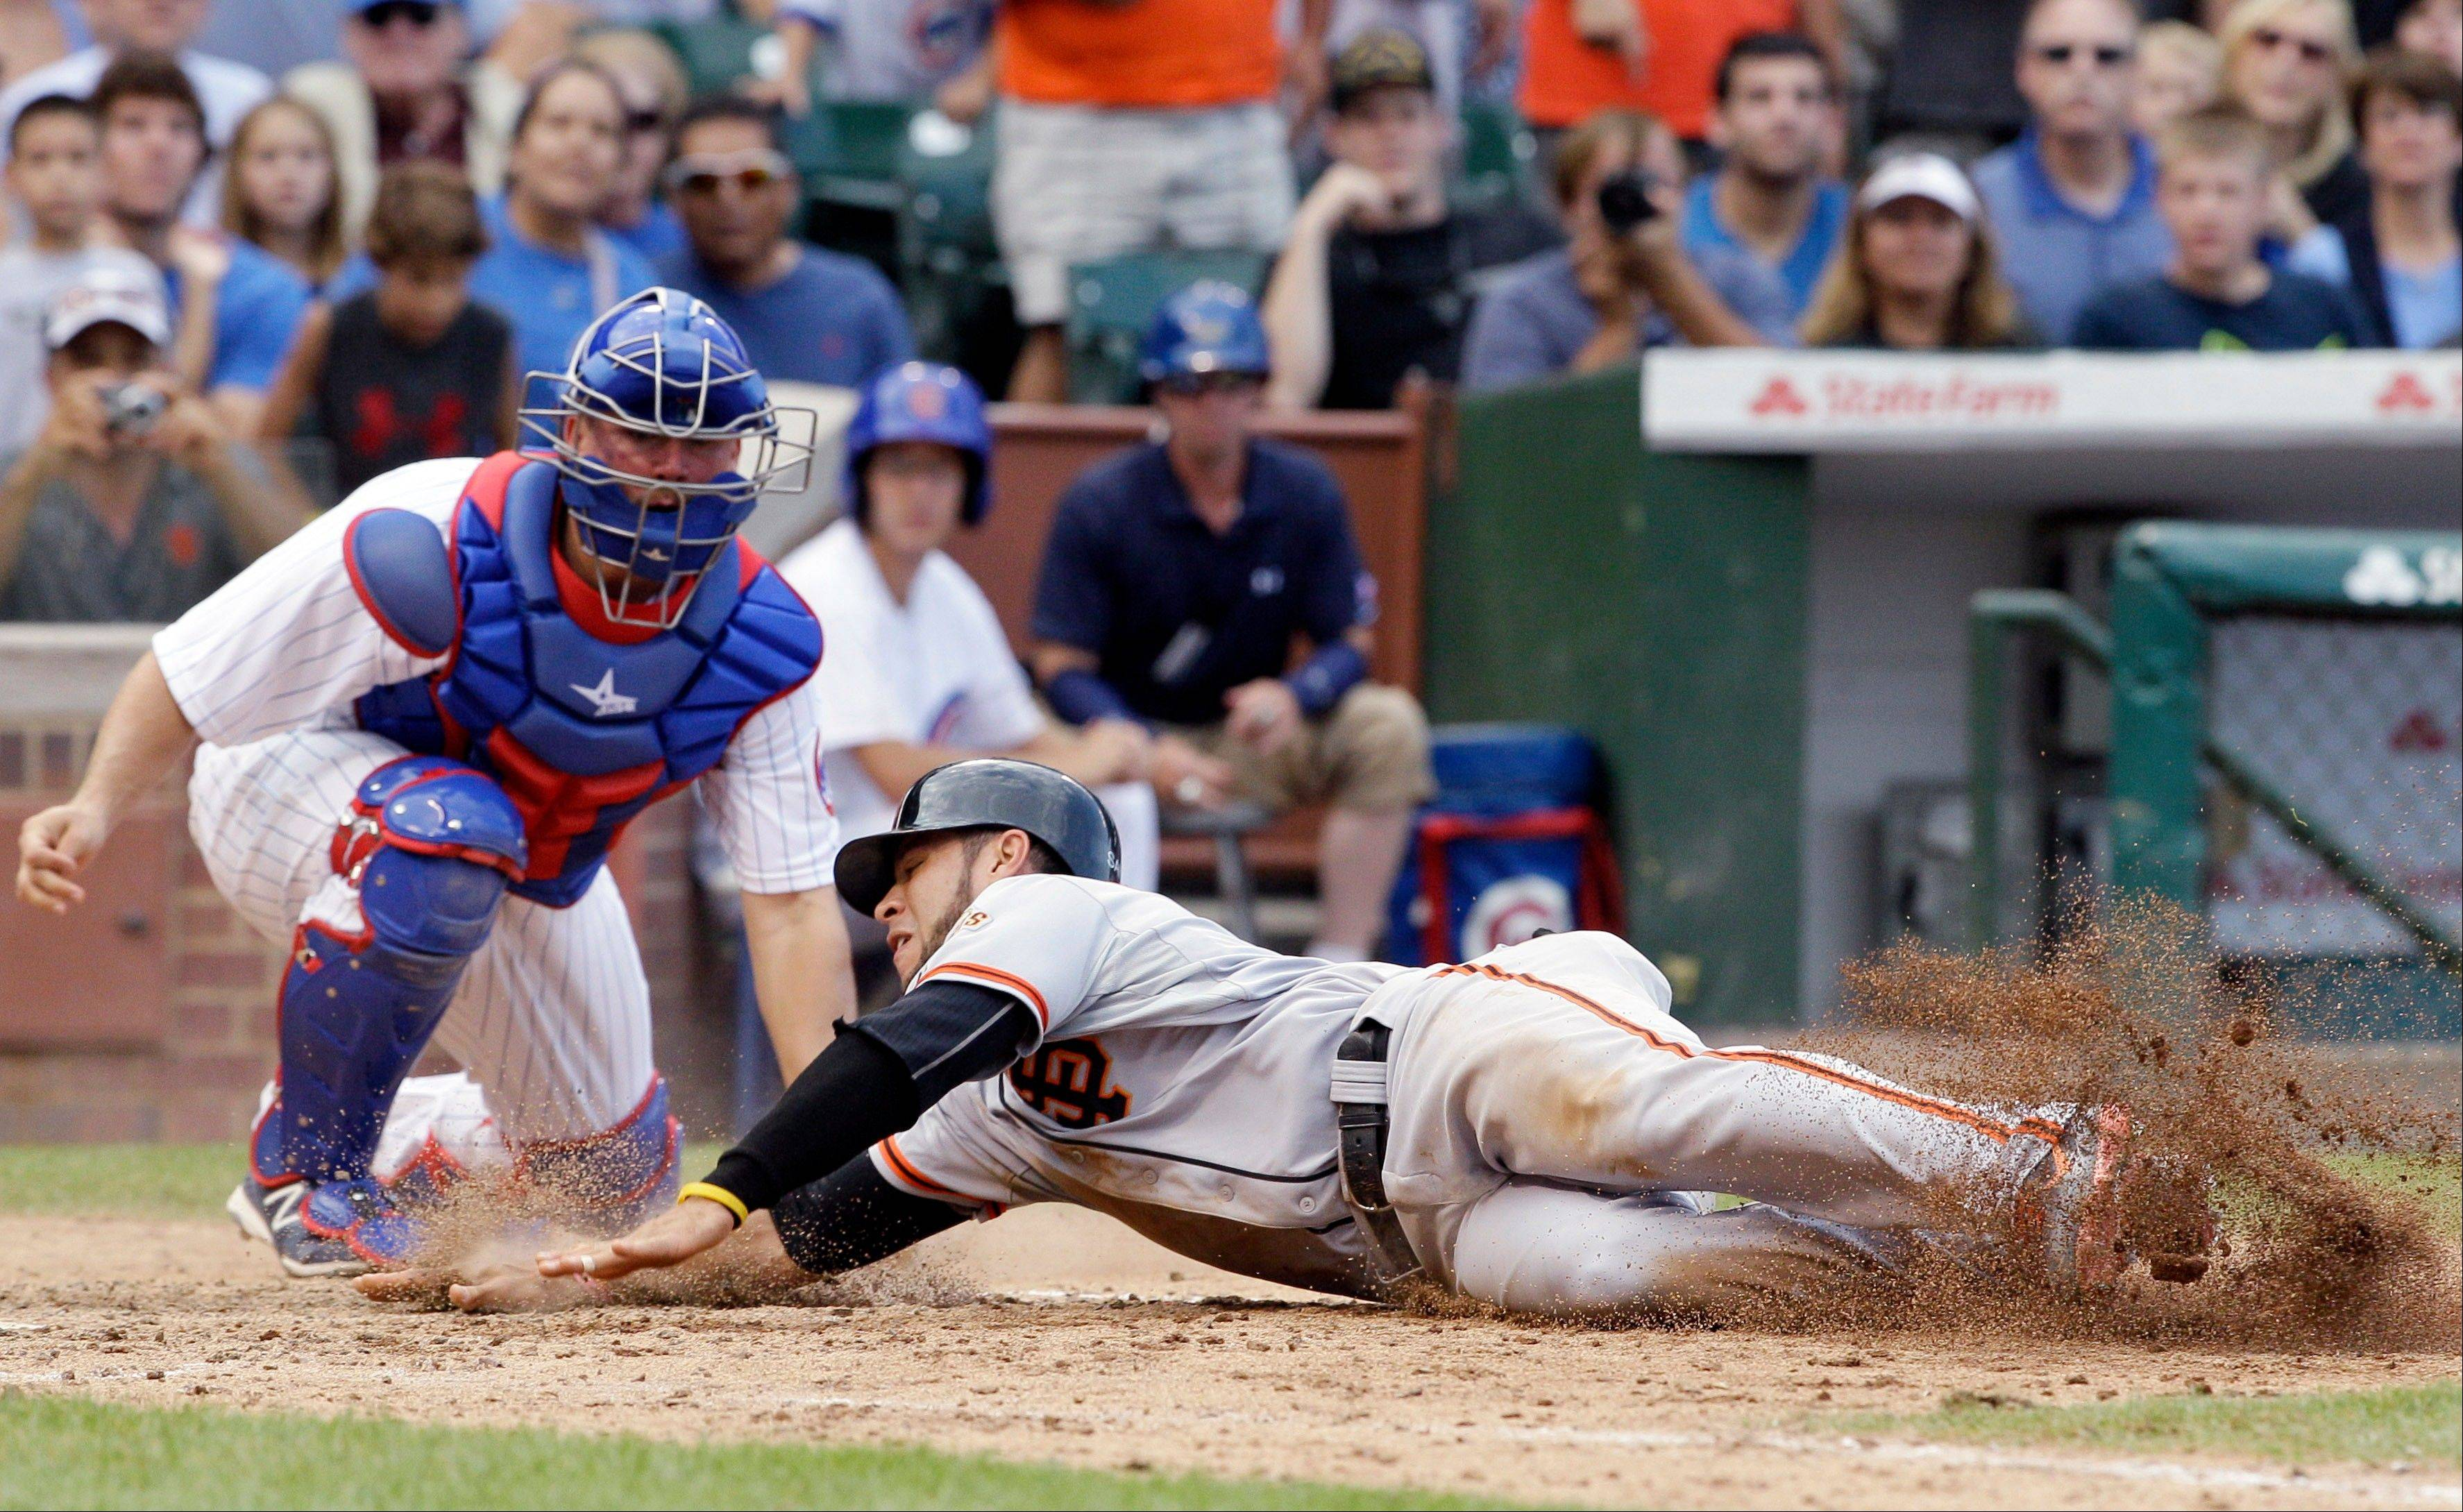 The Giants' Gregor Blanco scores what turned out to be the winning run Sunday on a single by Angel Pagan as Cubs catcher Steve Clevenger looks on in the ninth inning at Wrigley Field.